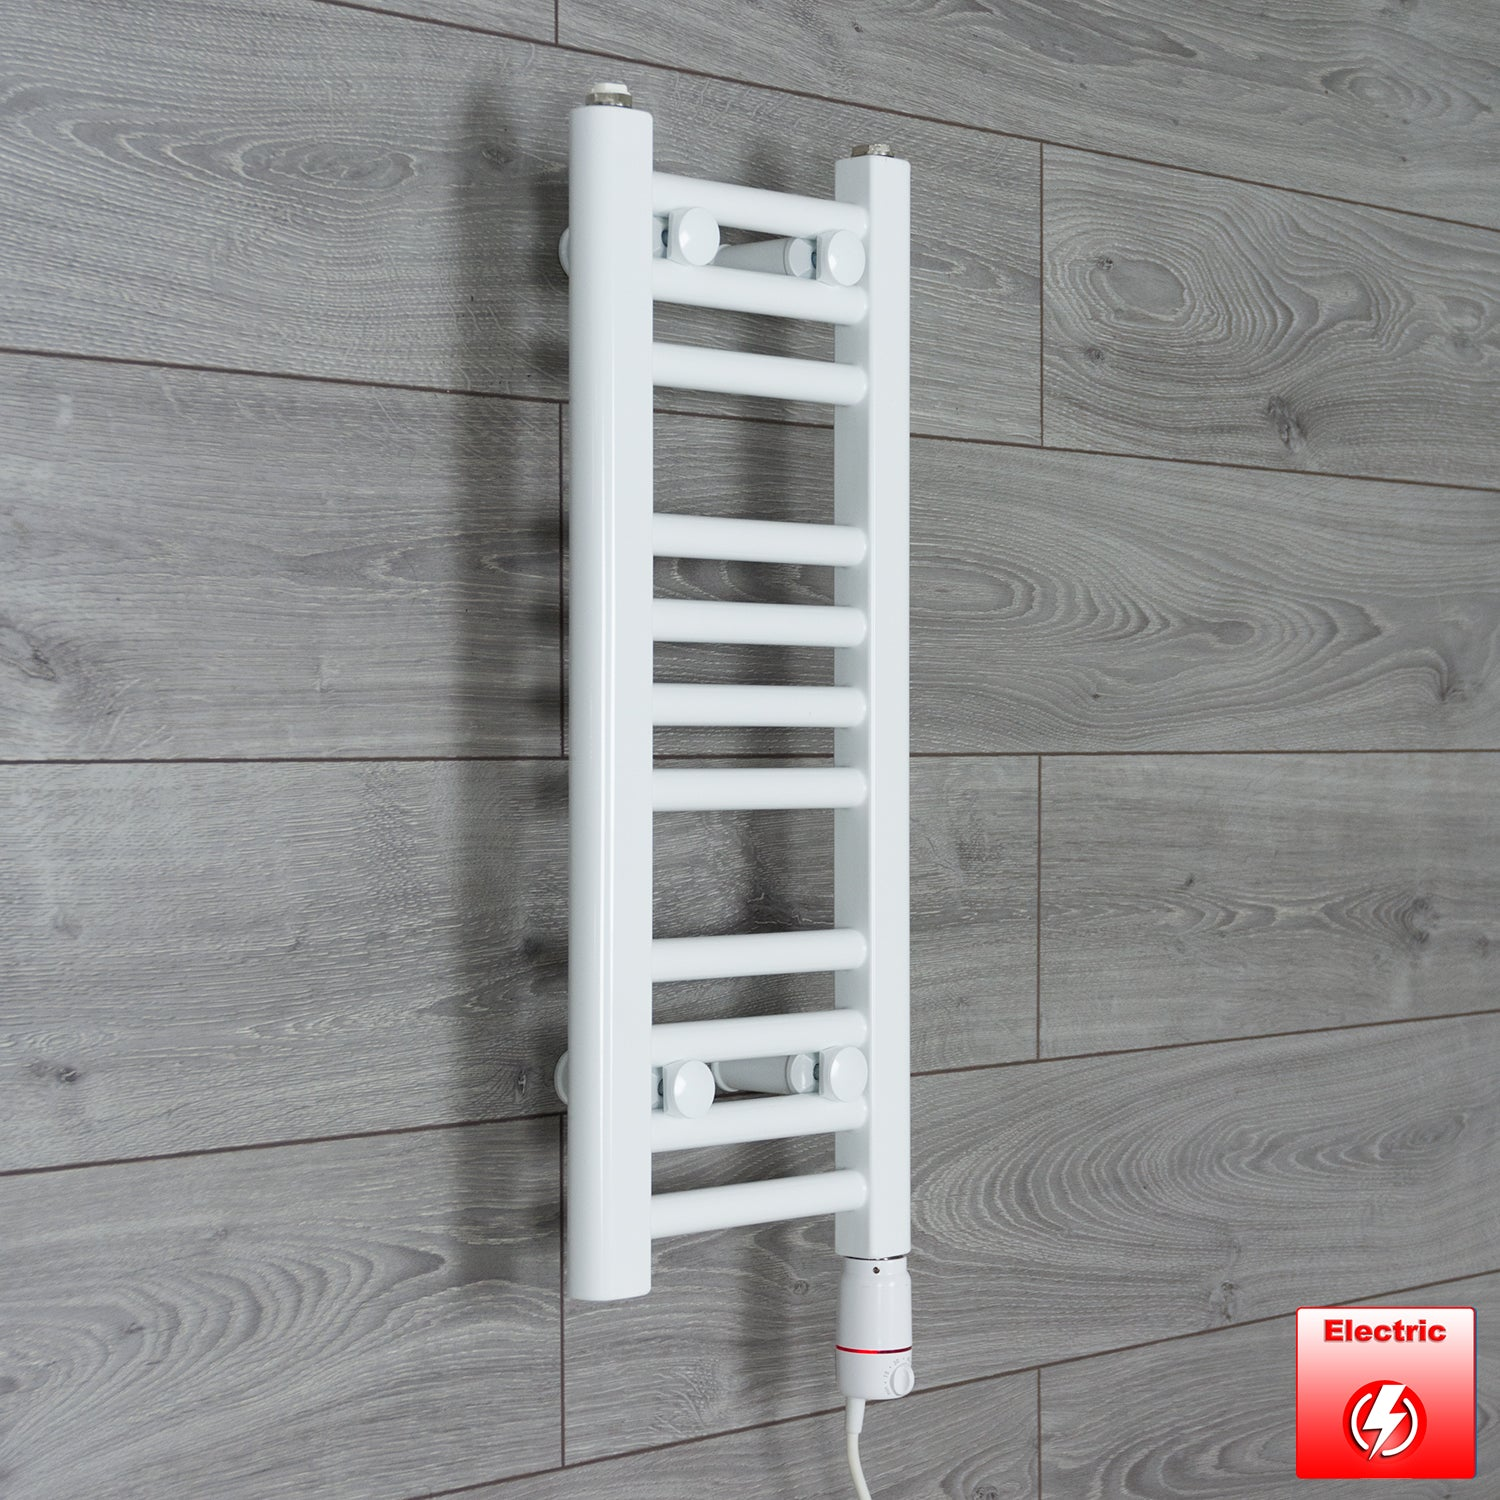 300mm Wide 600mm High Flat WHITE Pre-Filled Electric Heated Towel Rail Radiator HTR,GT Thermostatic